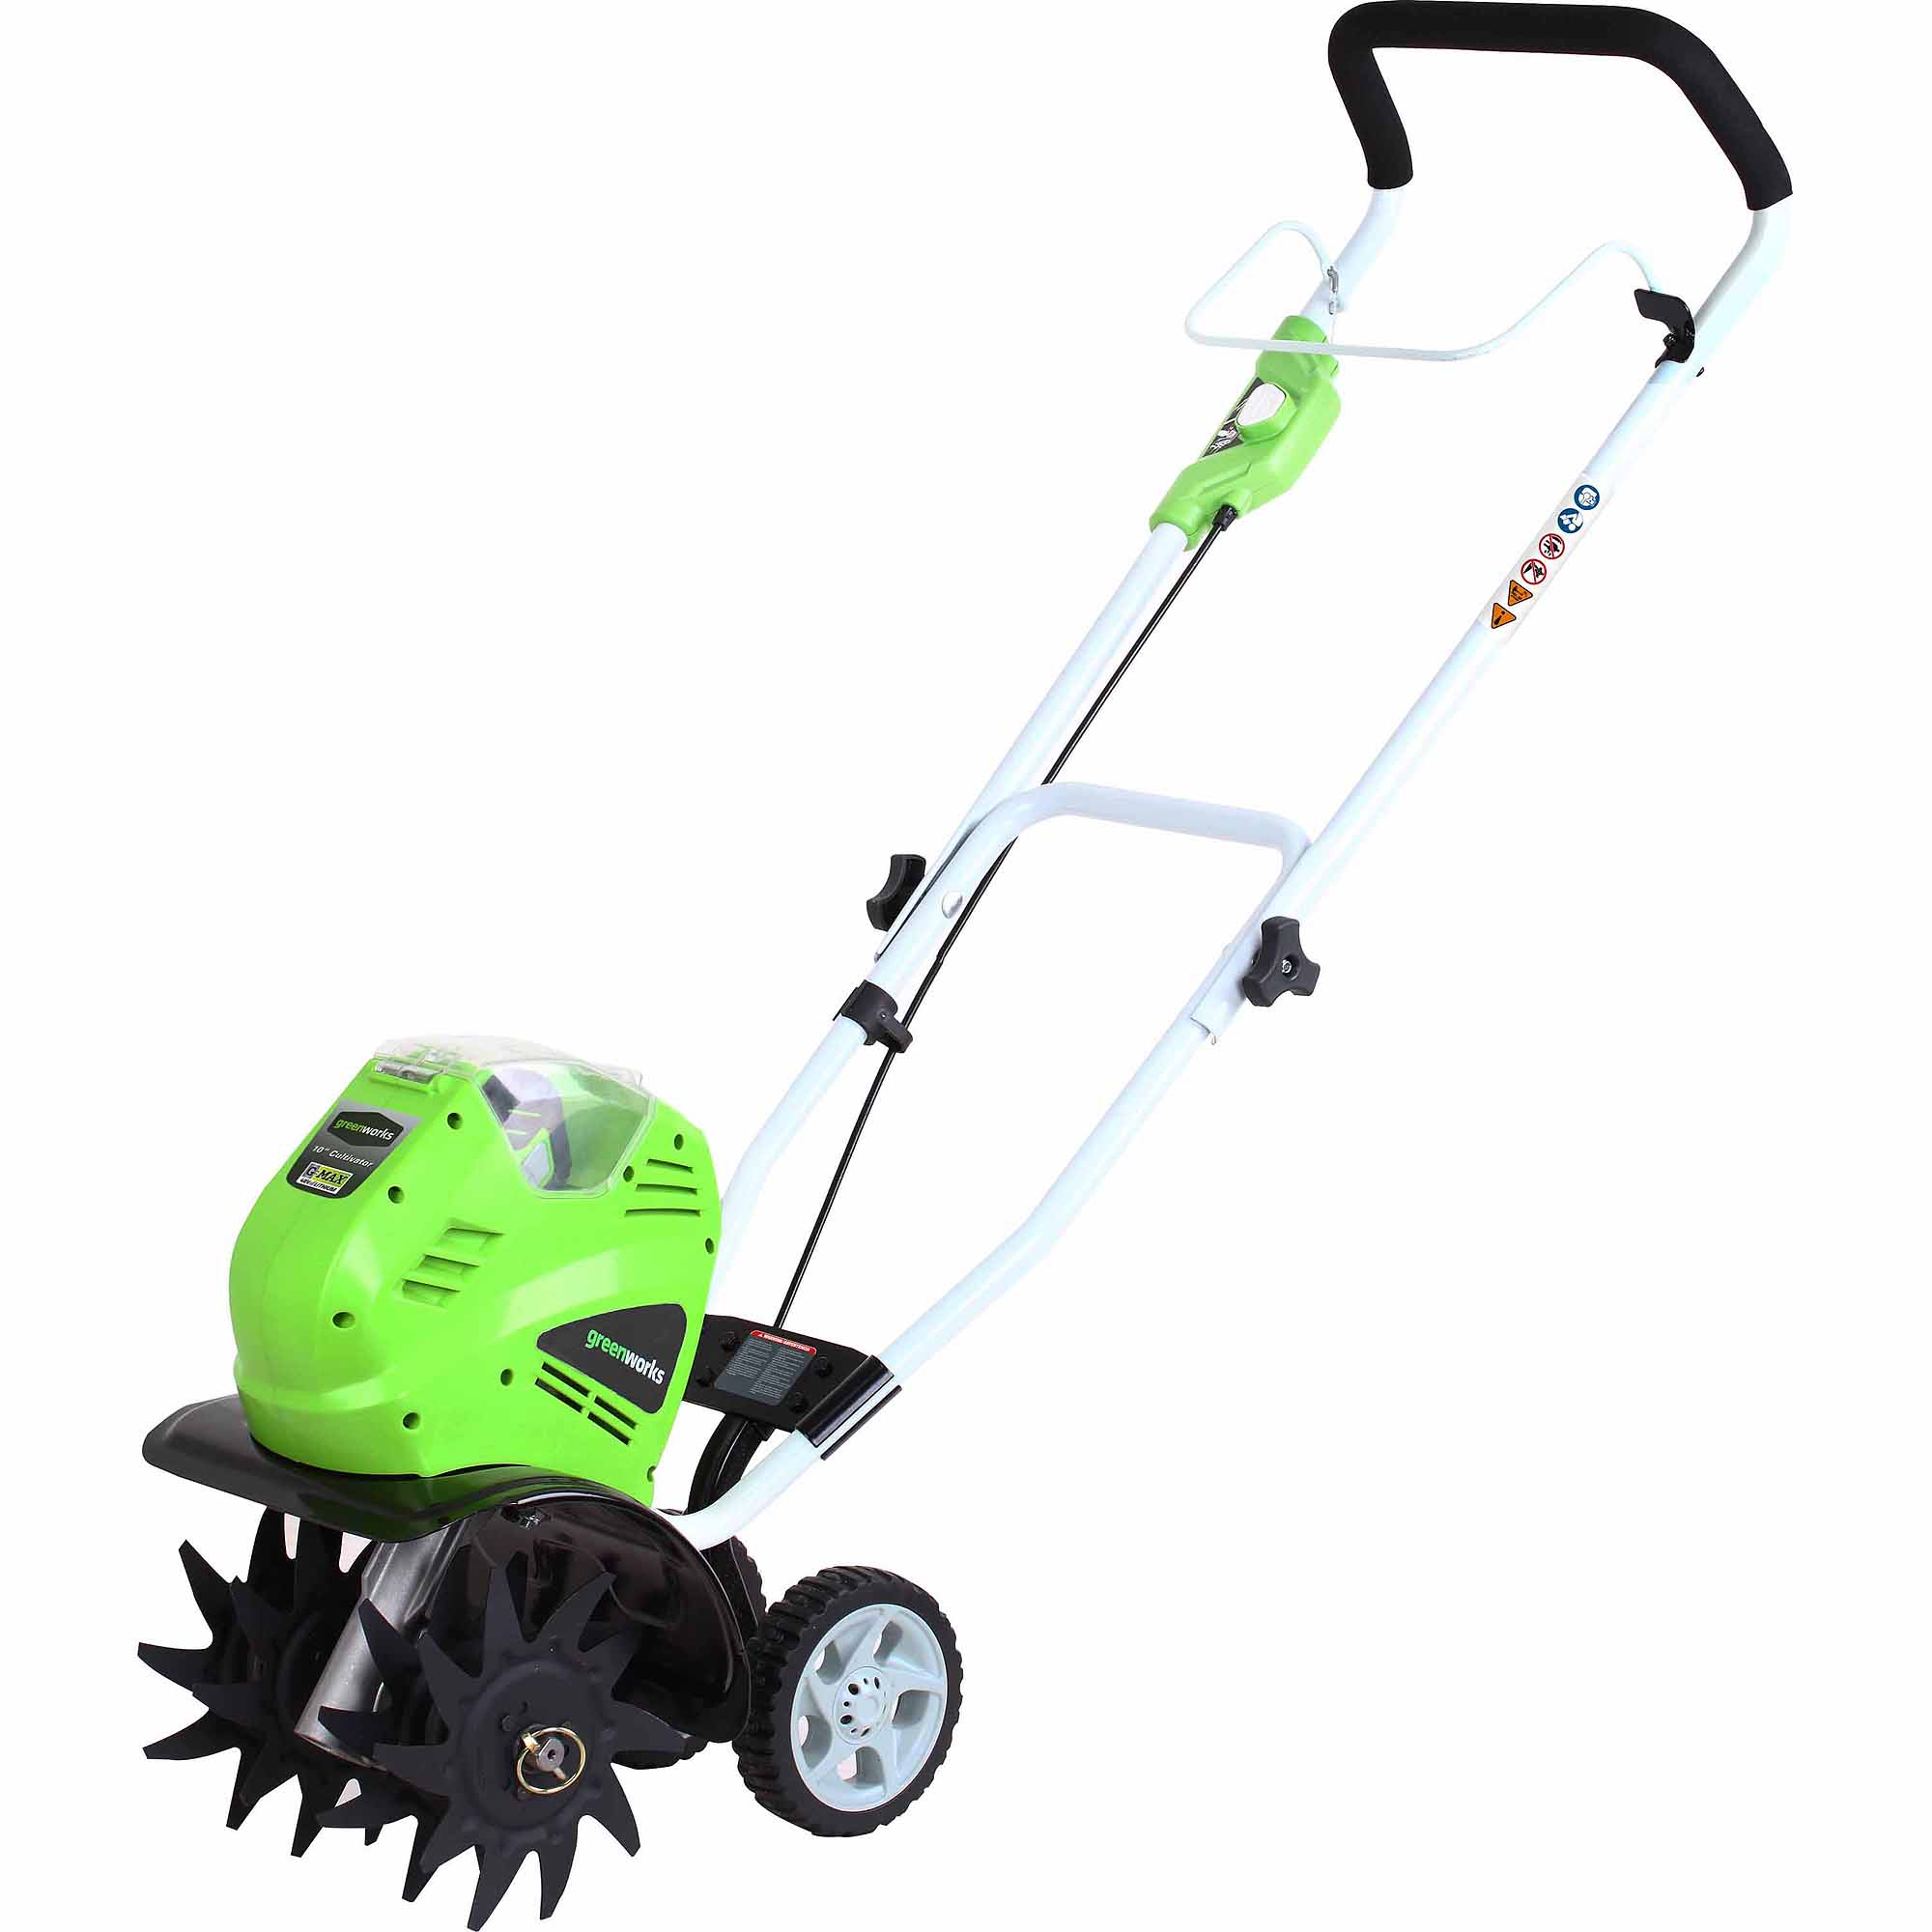 "GreenWorks 27062 40V 10"" Cordless Cultivator, Includes 4.0Ah Battery and Charger"